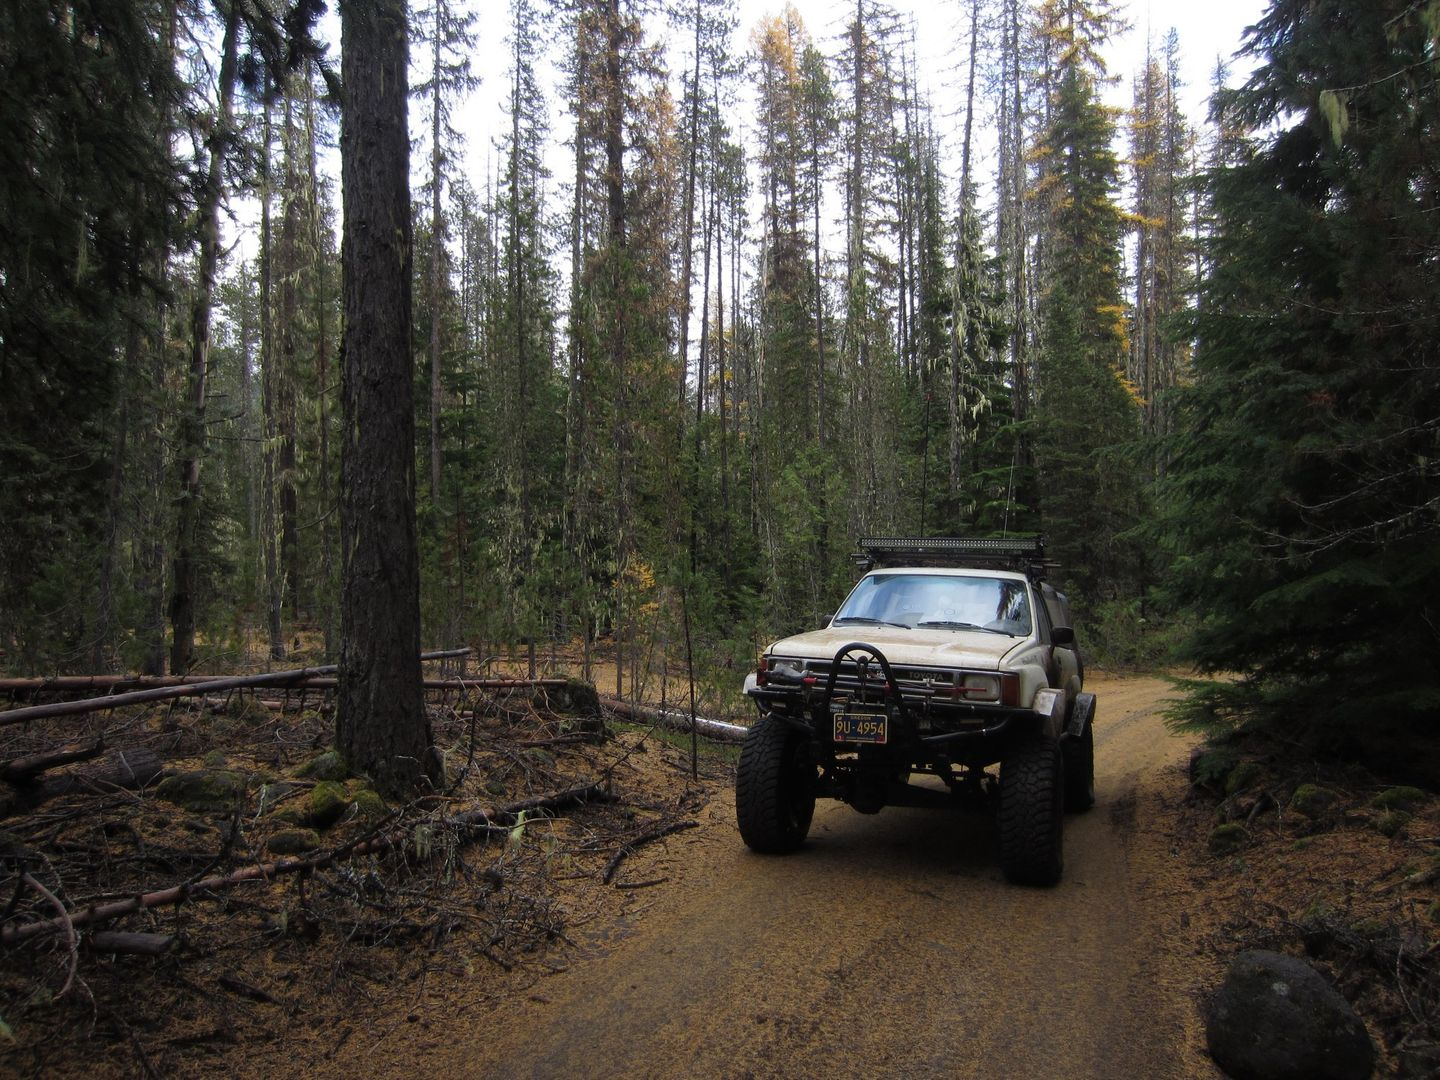 Barlow Trail - Waypoint 33: Continue Straight